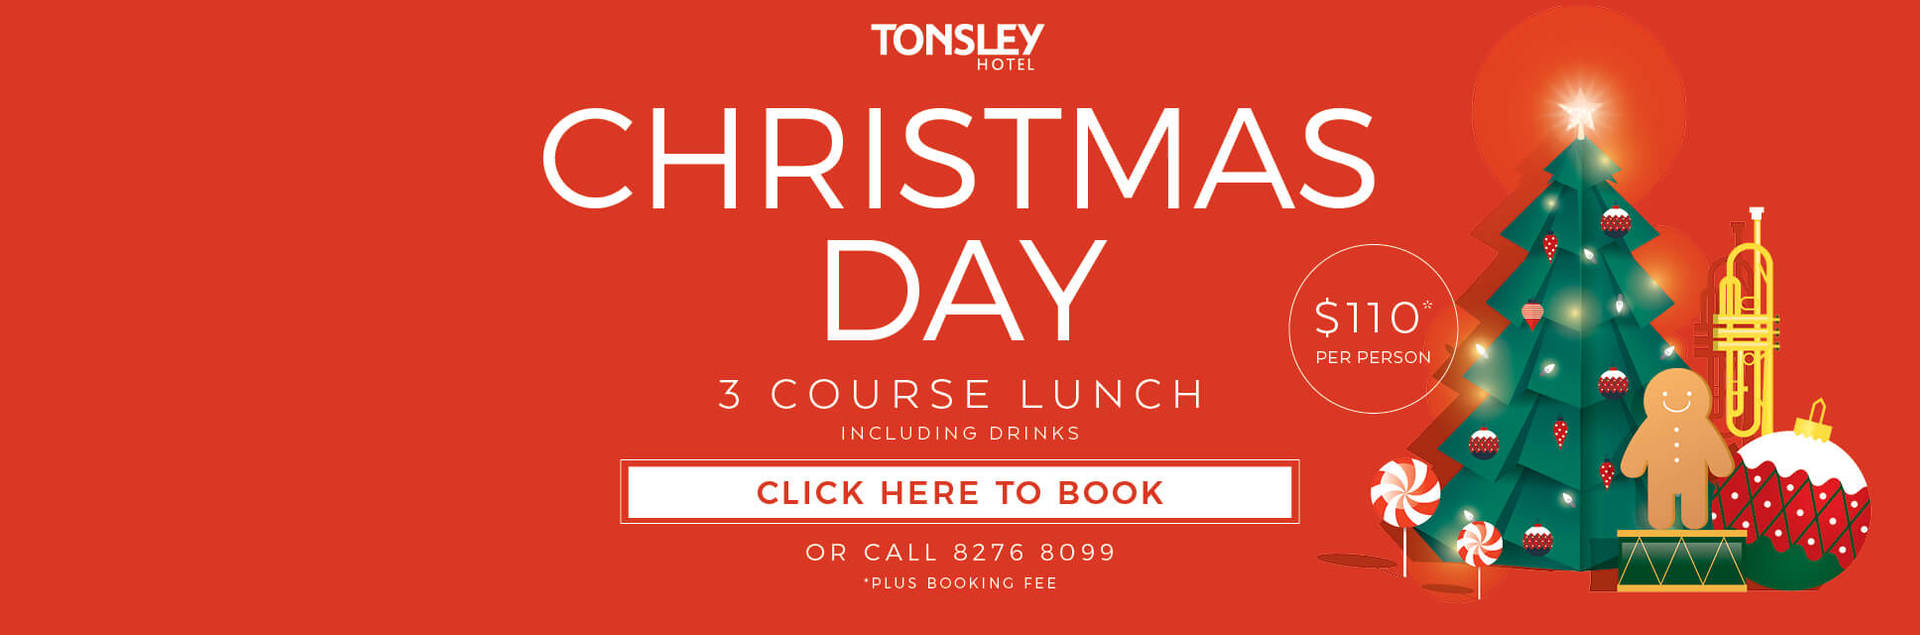 The-Tonsley-Hotel-Restaurant-Adelaide-Accommodation-Function-Rooms-Music-Christmas-Day-slider.jpg